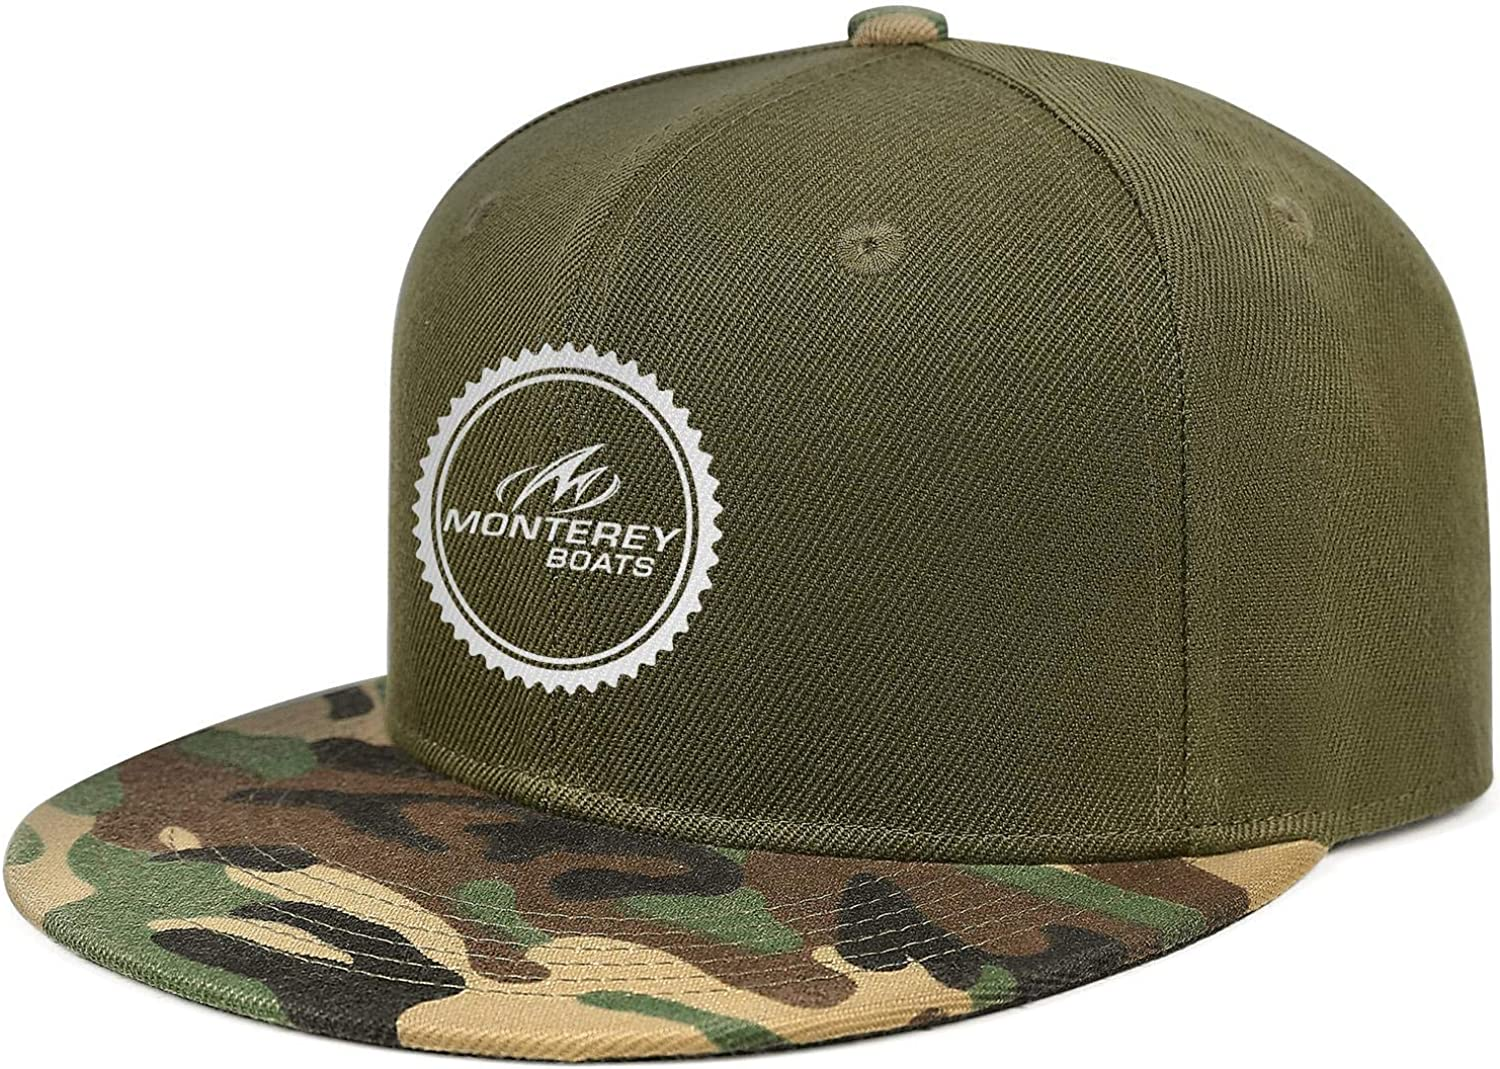 Forest Green Plain Solid Washed Cotton Polo Style Baseball Cap Caps Hat Hats